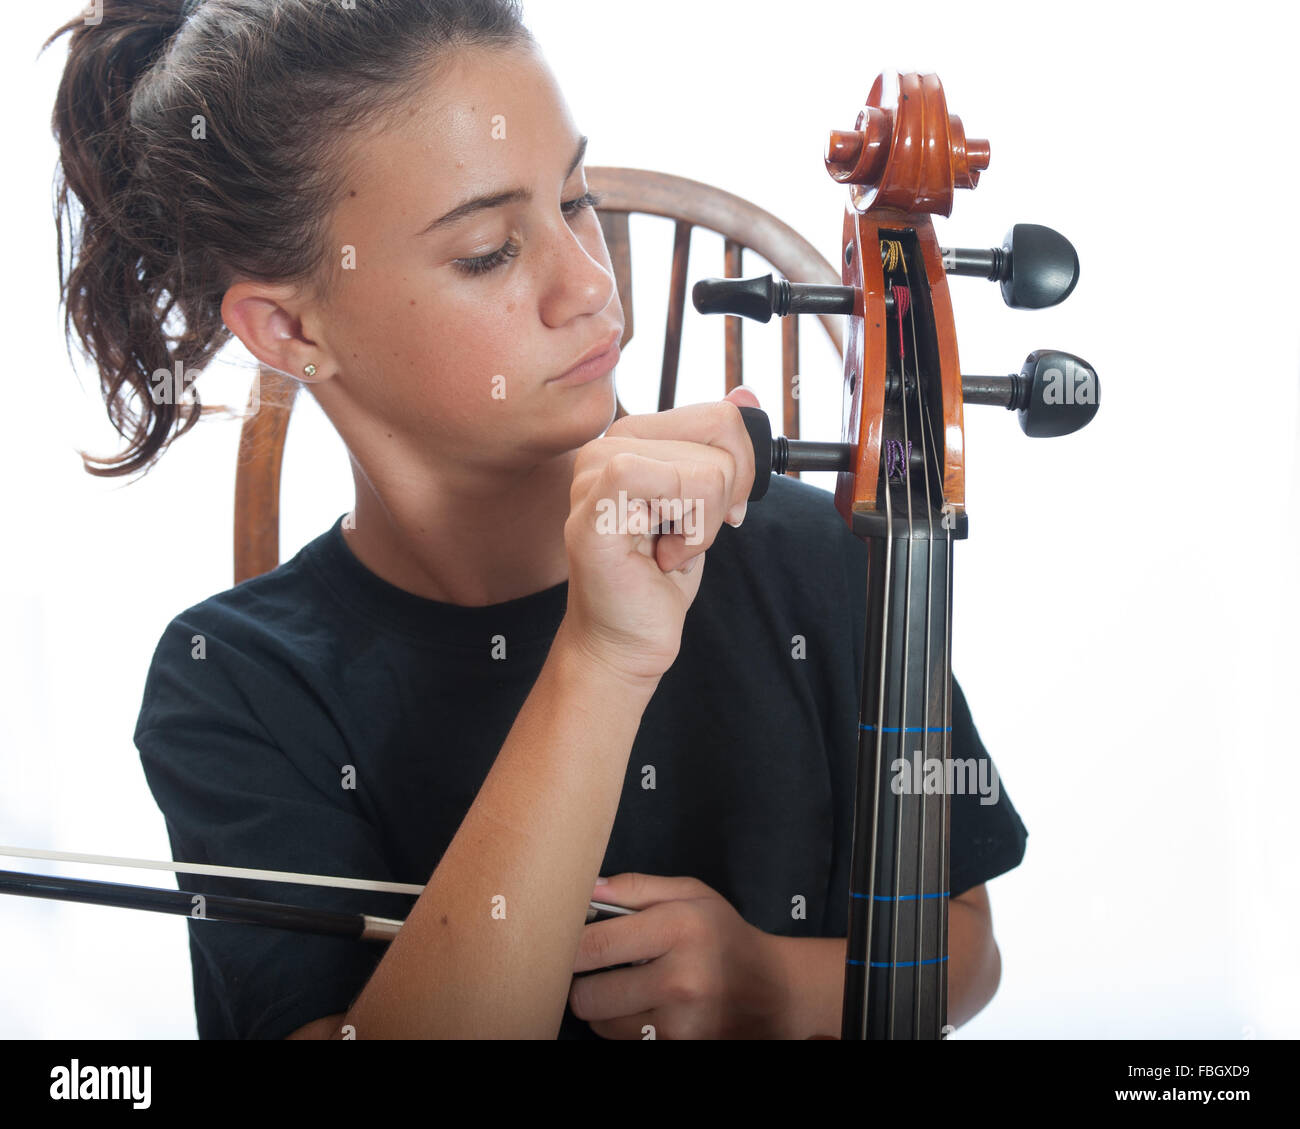 Pre teen girl close up tuning her cello. - Stock Image